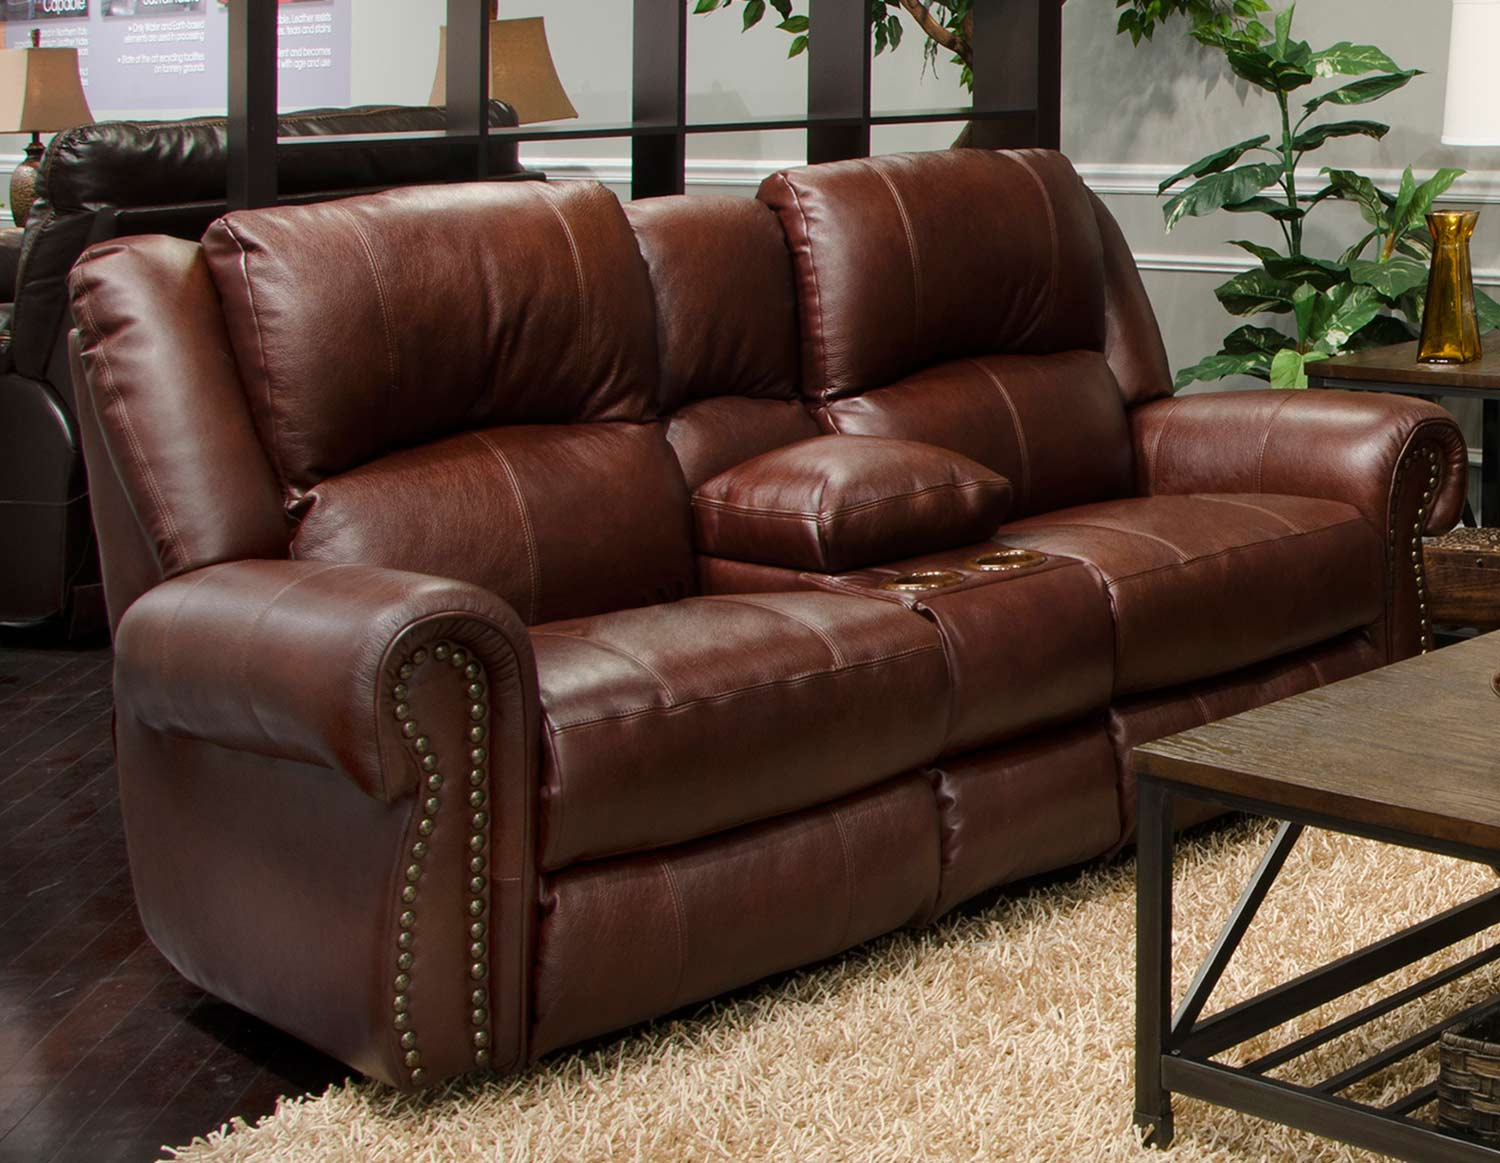 CatNapper Messina Leather Power Reclining Console Loveseat - Walnut